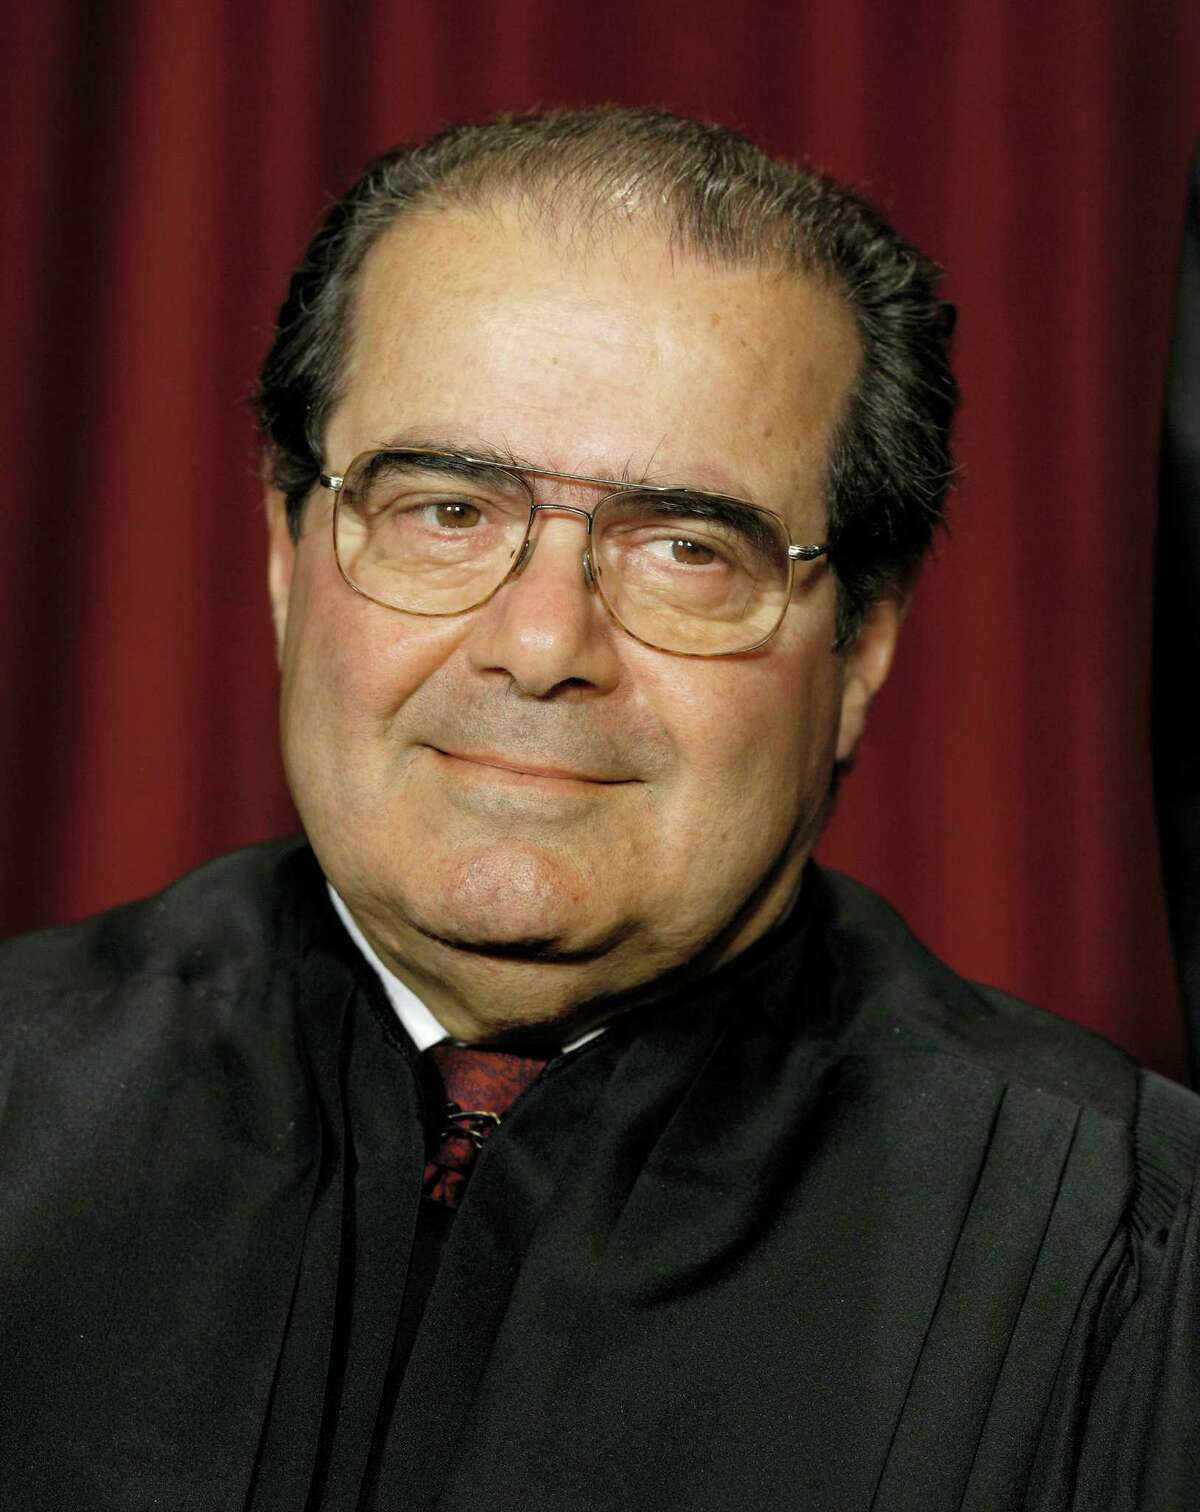 In this Oct. 31, 2005 photo, Associate Justice Antonin Scalia joins the members of the Supreme Court for photos during a group portrait session, at the Supreme Court Building in Washington. On Feb. 13, 2016, the U.S. Marshals Service confirmed that Scalia has died at the age of 79.